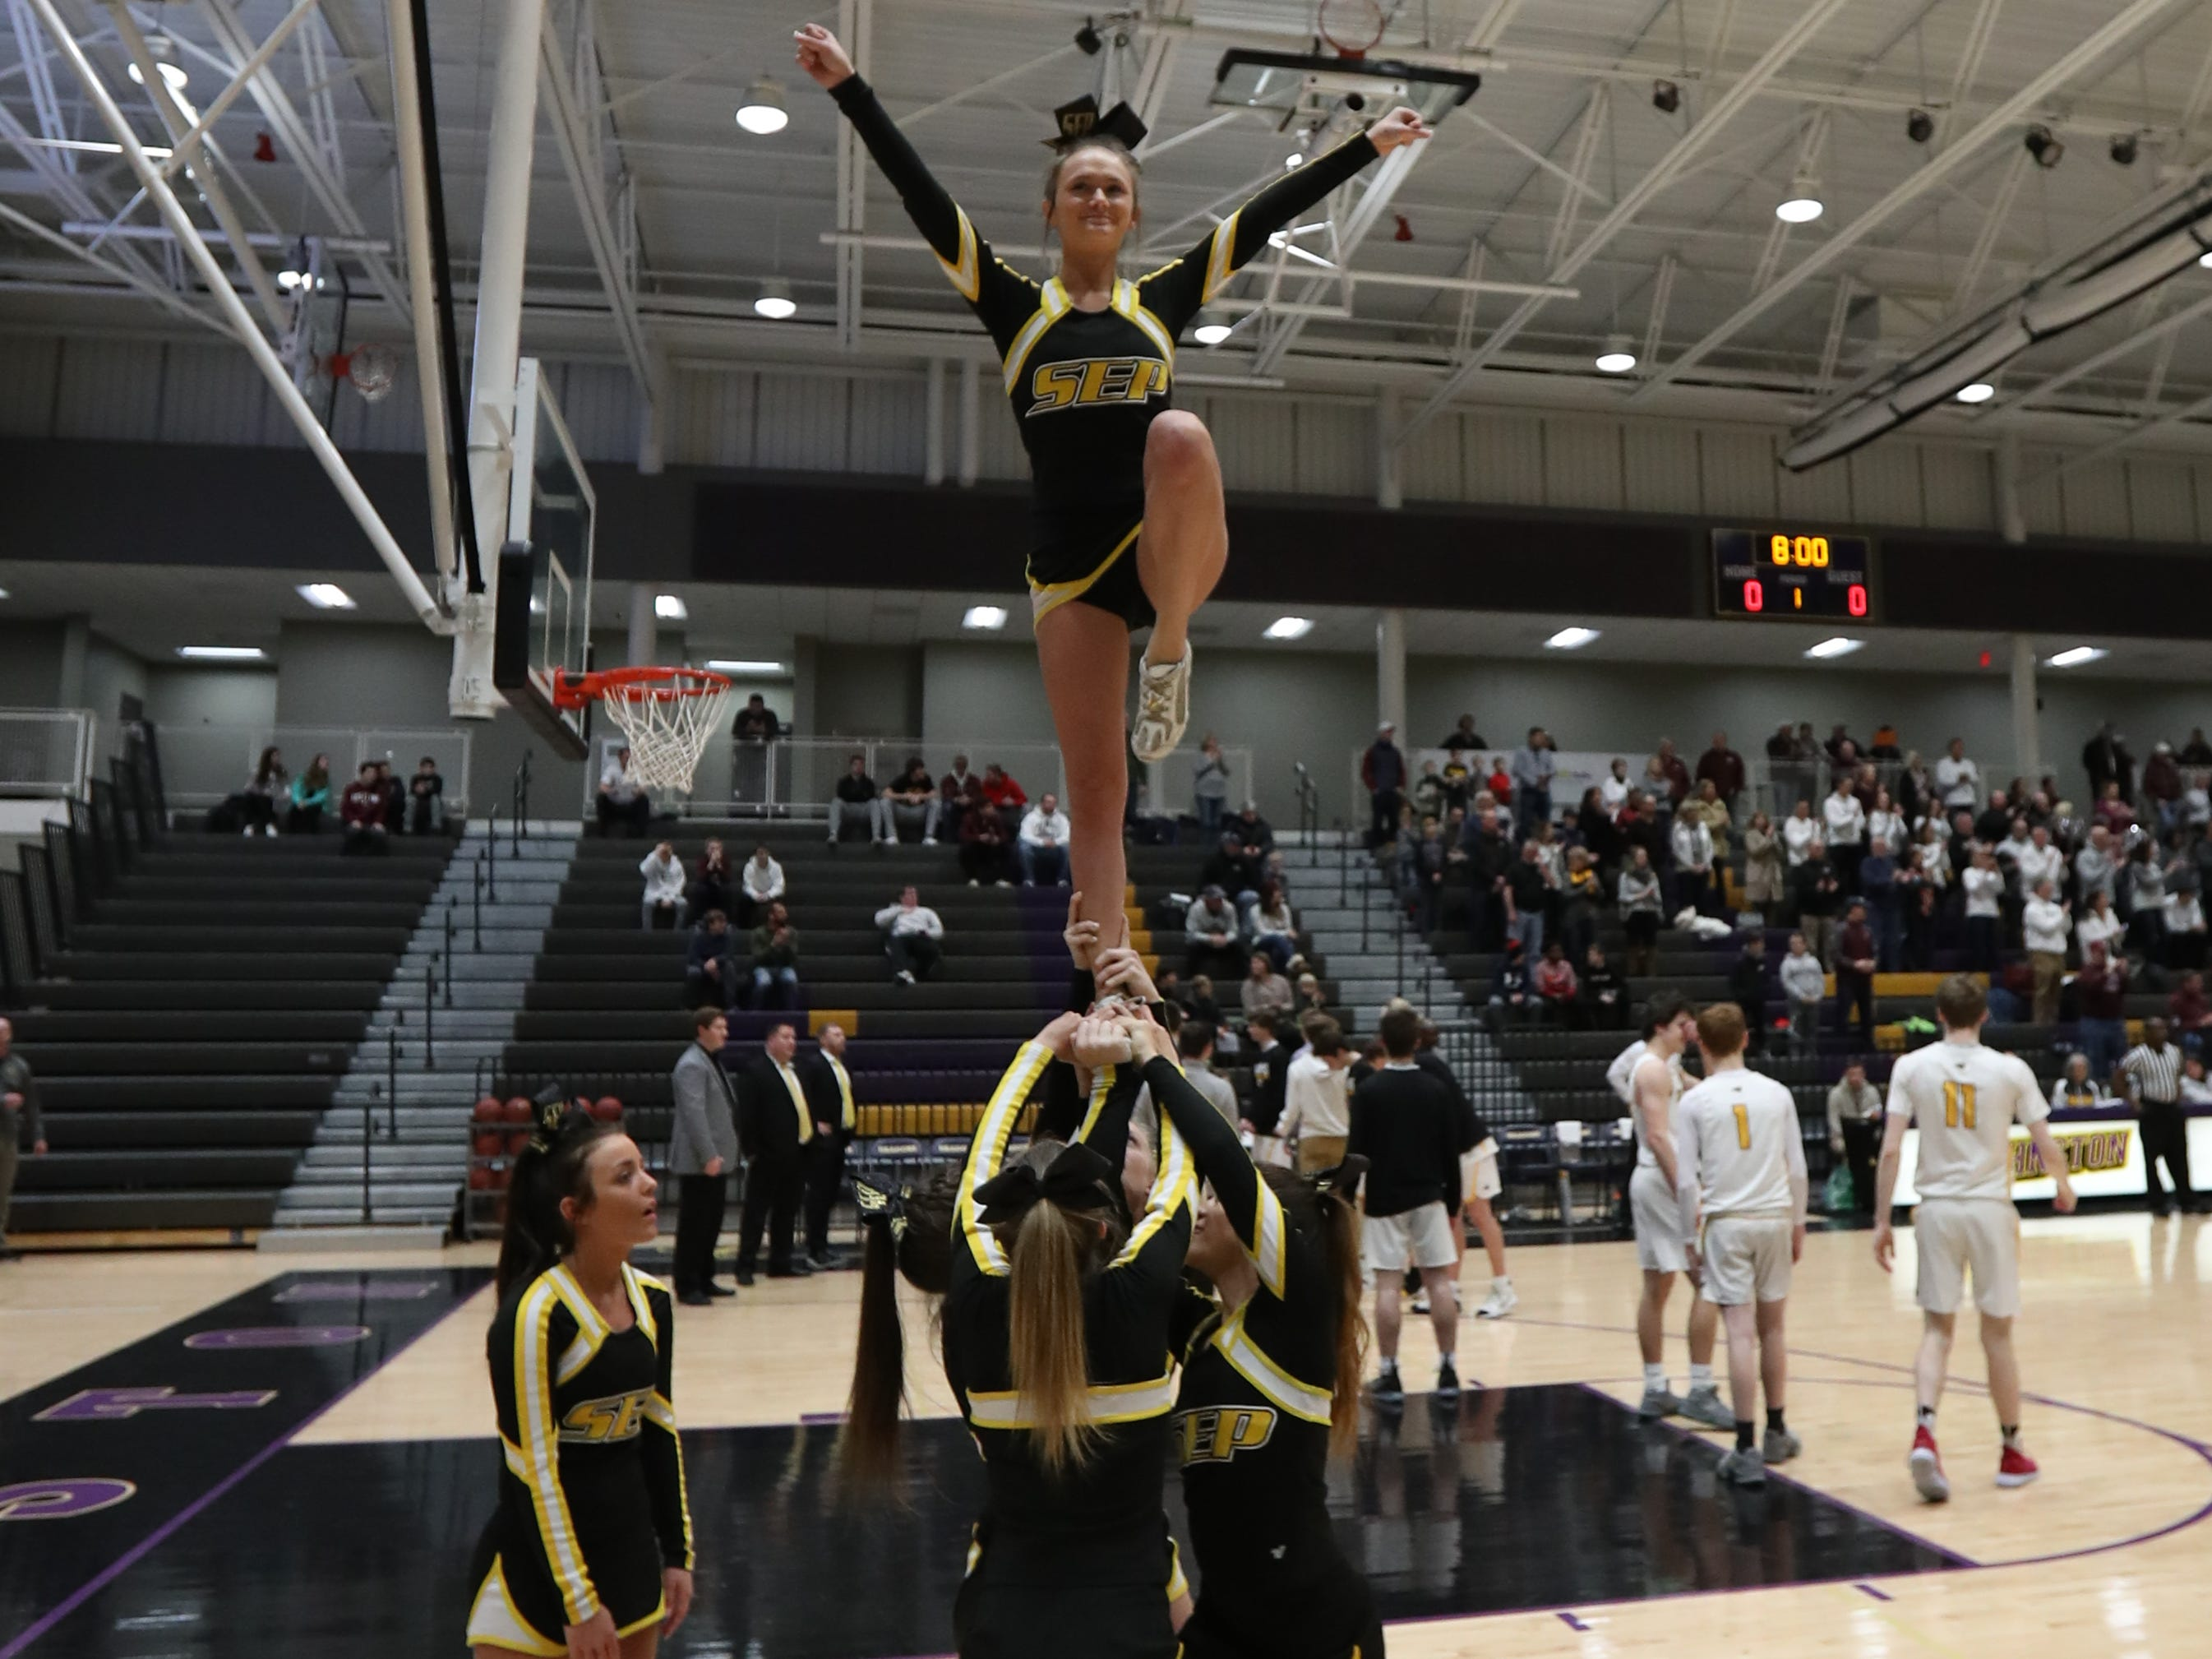 The Southeast Polk cheer squad lead the crowd in cheers against Dowling Catholic during their game at Johnston High School in Johnston, Iowa, on Tuesday, Feb. 26, 2019. Dowling won the game 44-40 to advance to state.